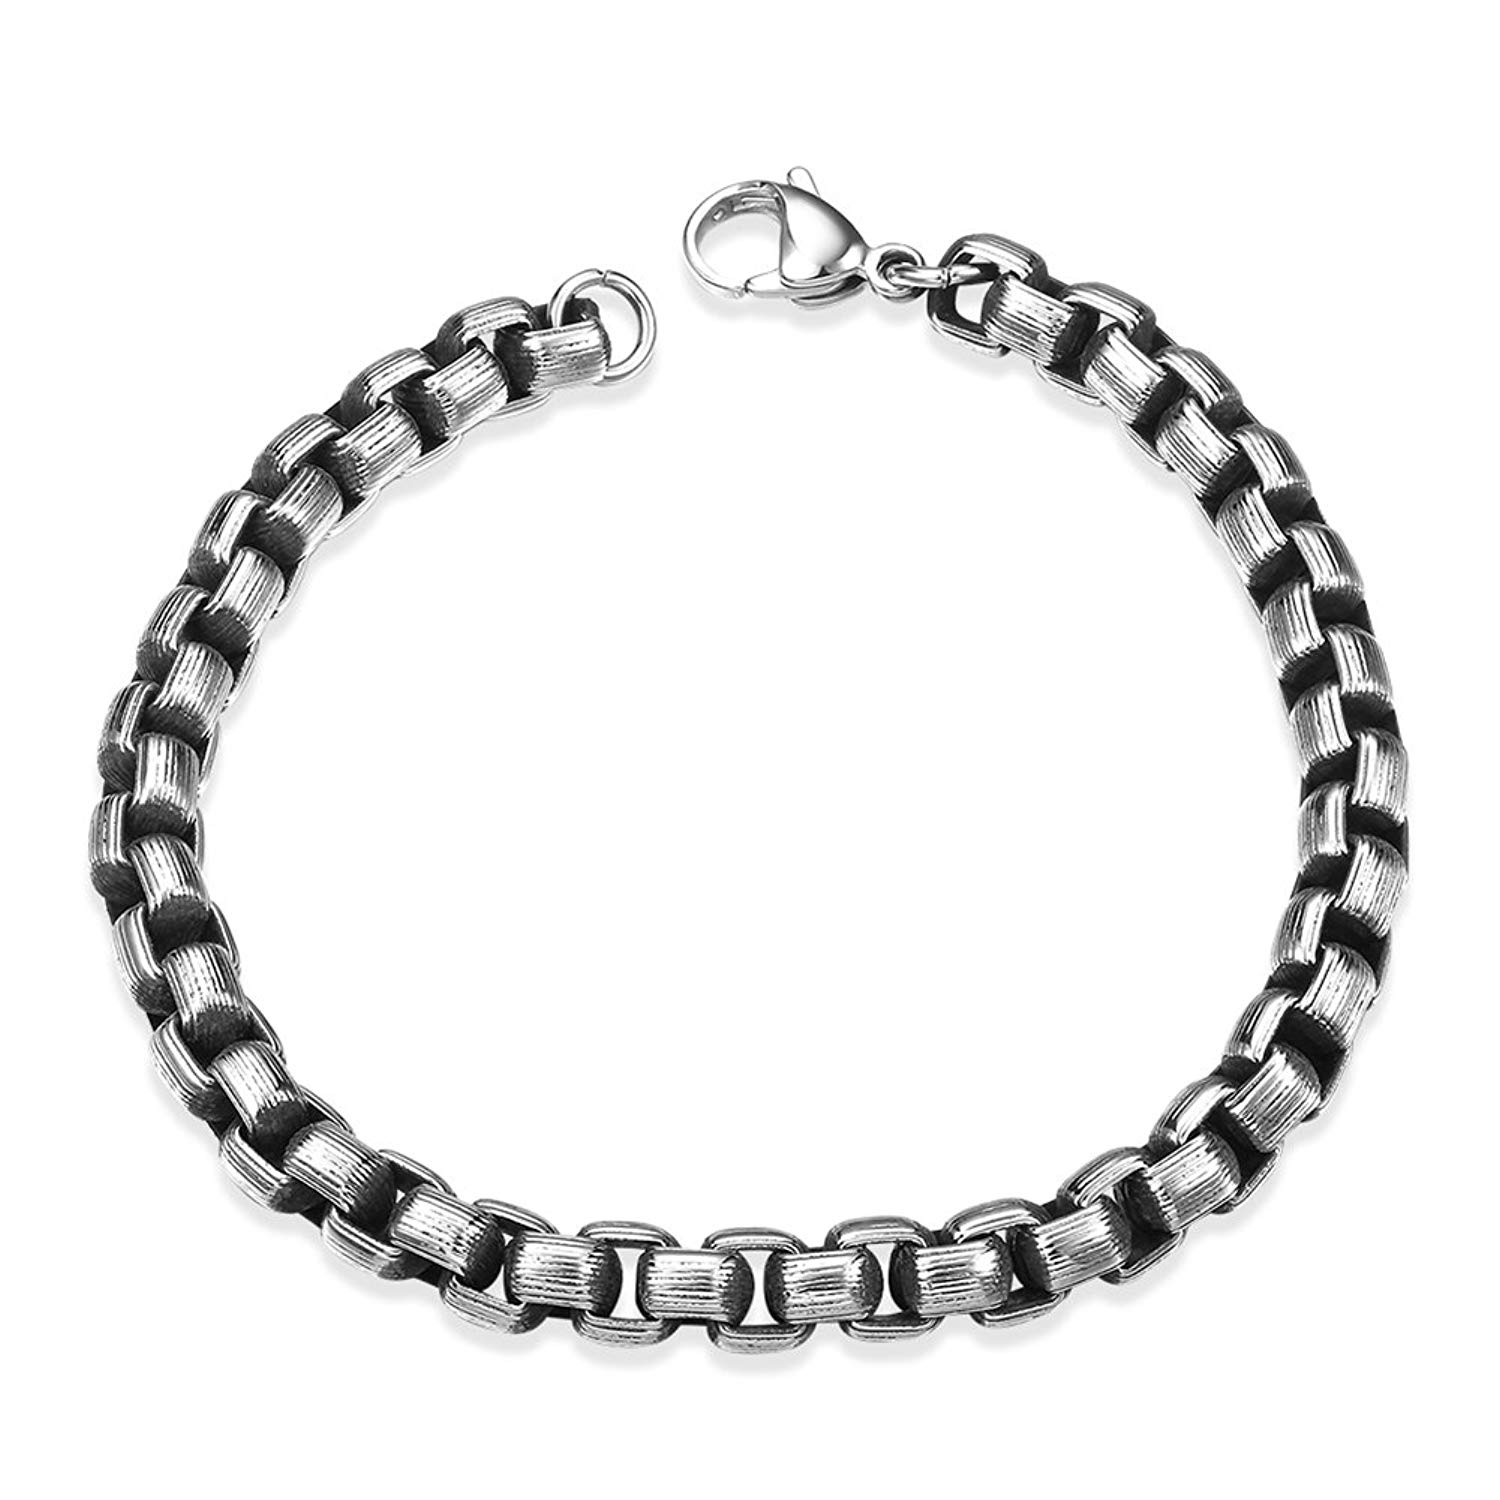 IVYRISE Black Silver Tone Mens Jewelry Punk Style Thick Chain Bracelet 316L Stainless Steel, 8 INCH Mens Bracelets